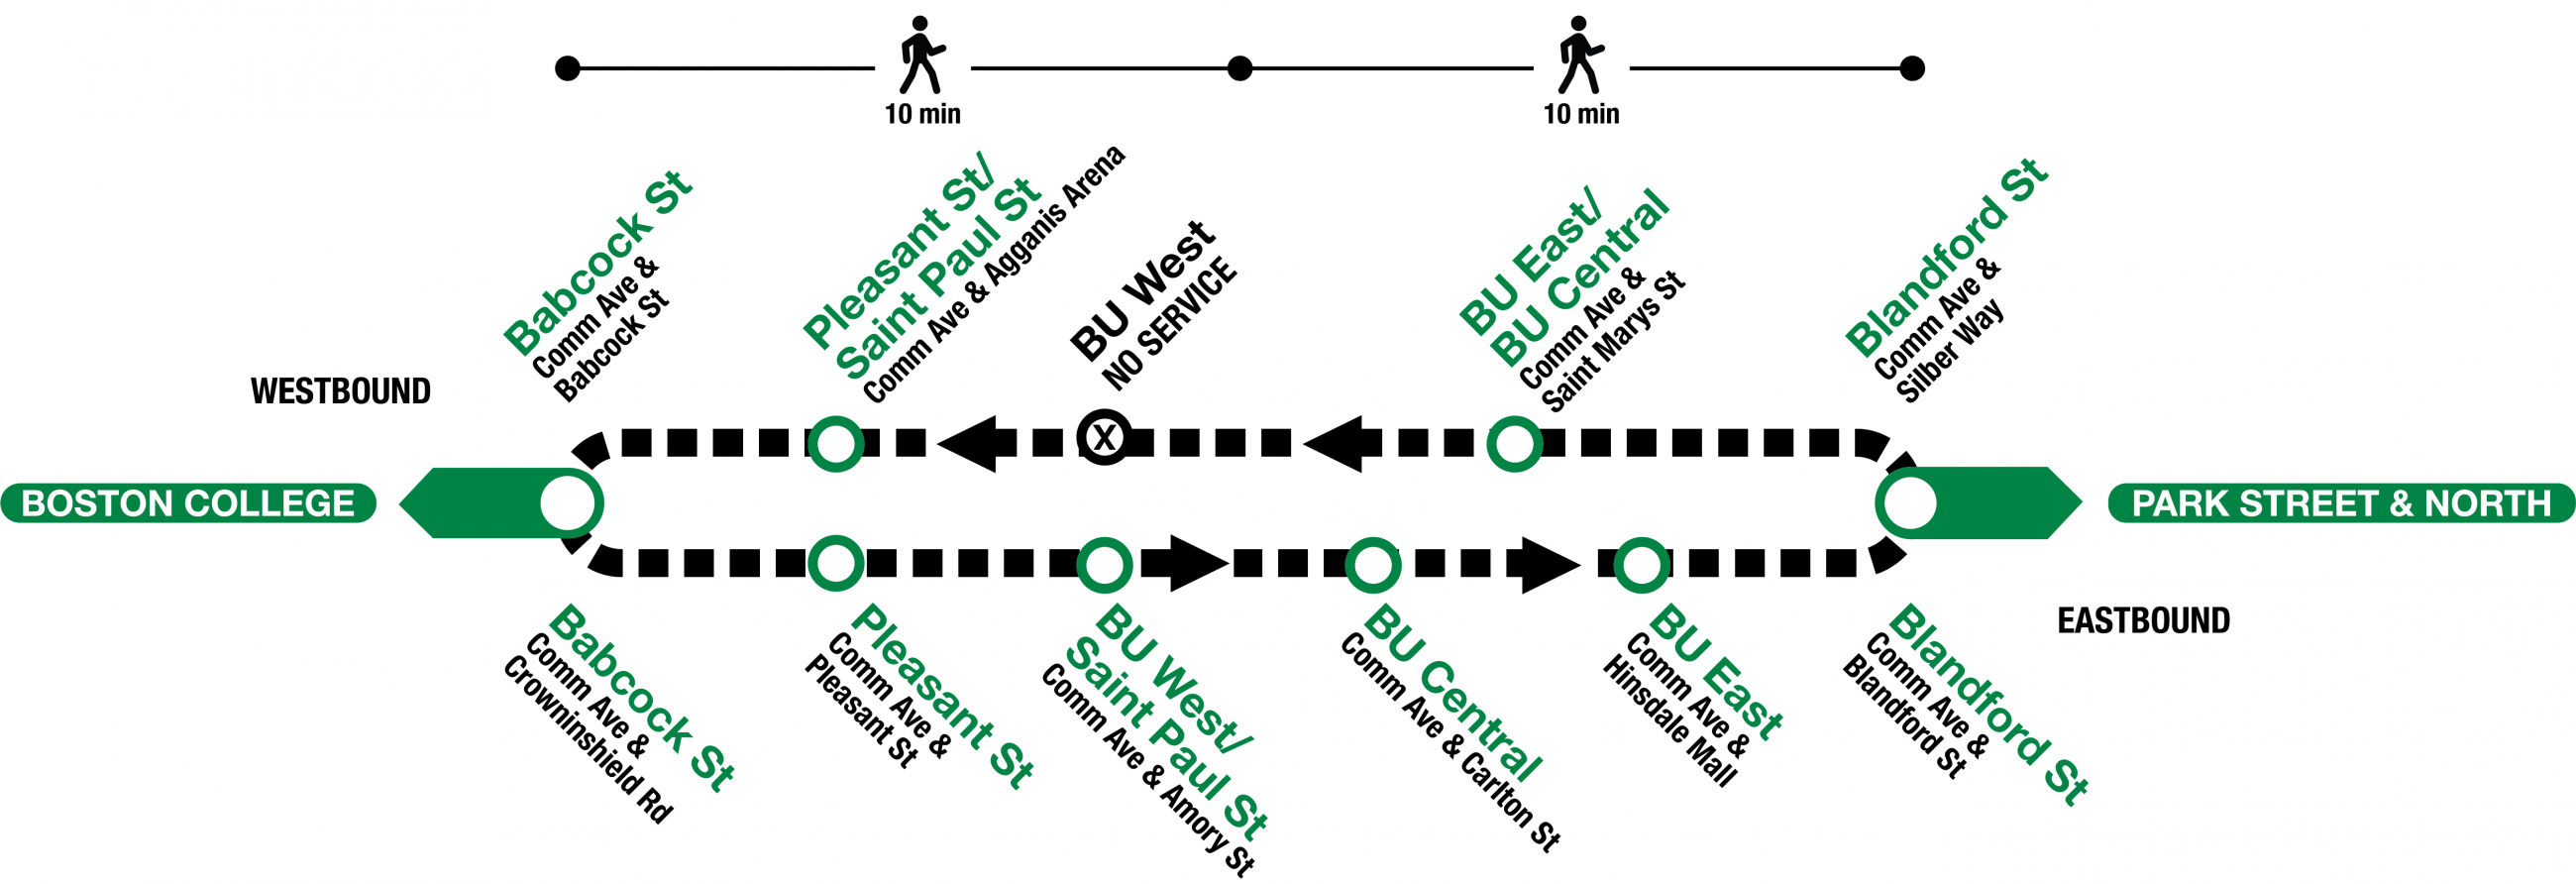 Bus shuttles replace trains between Blandford St and Babcock St, traveling in a loop.